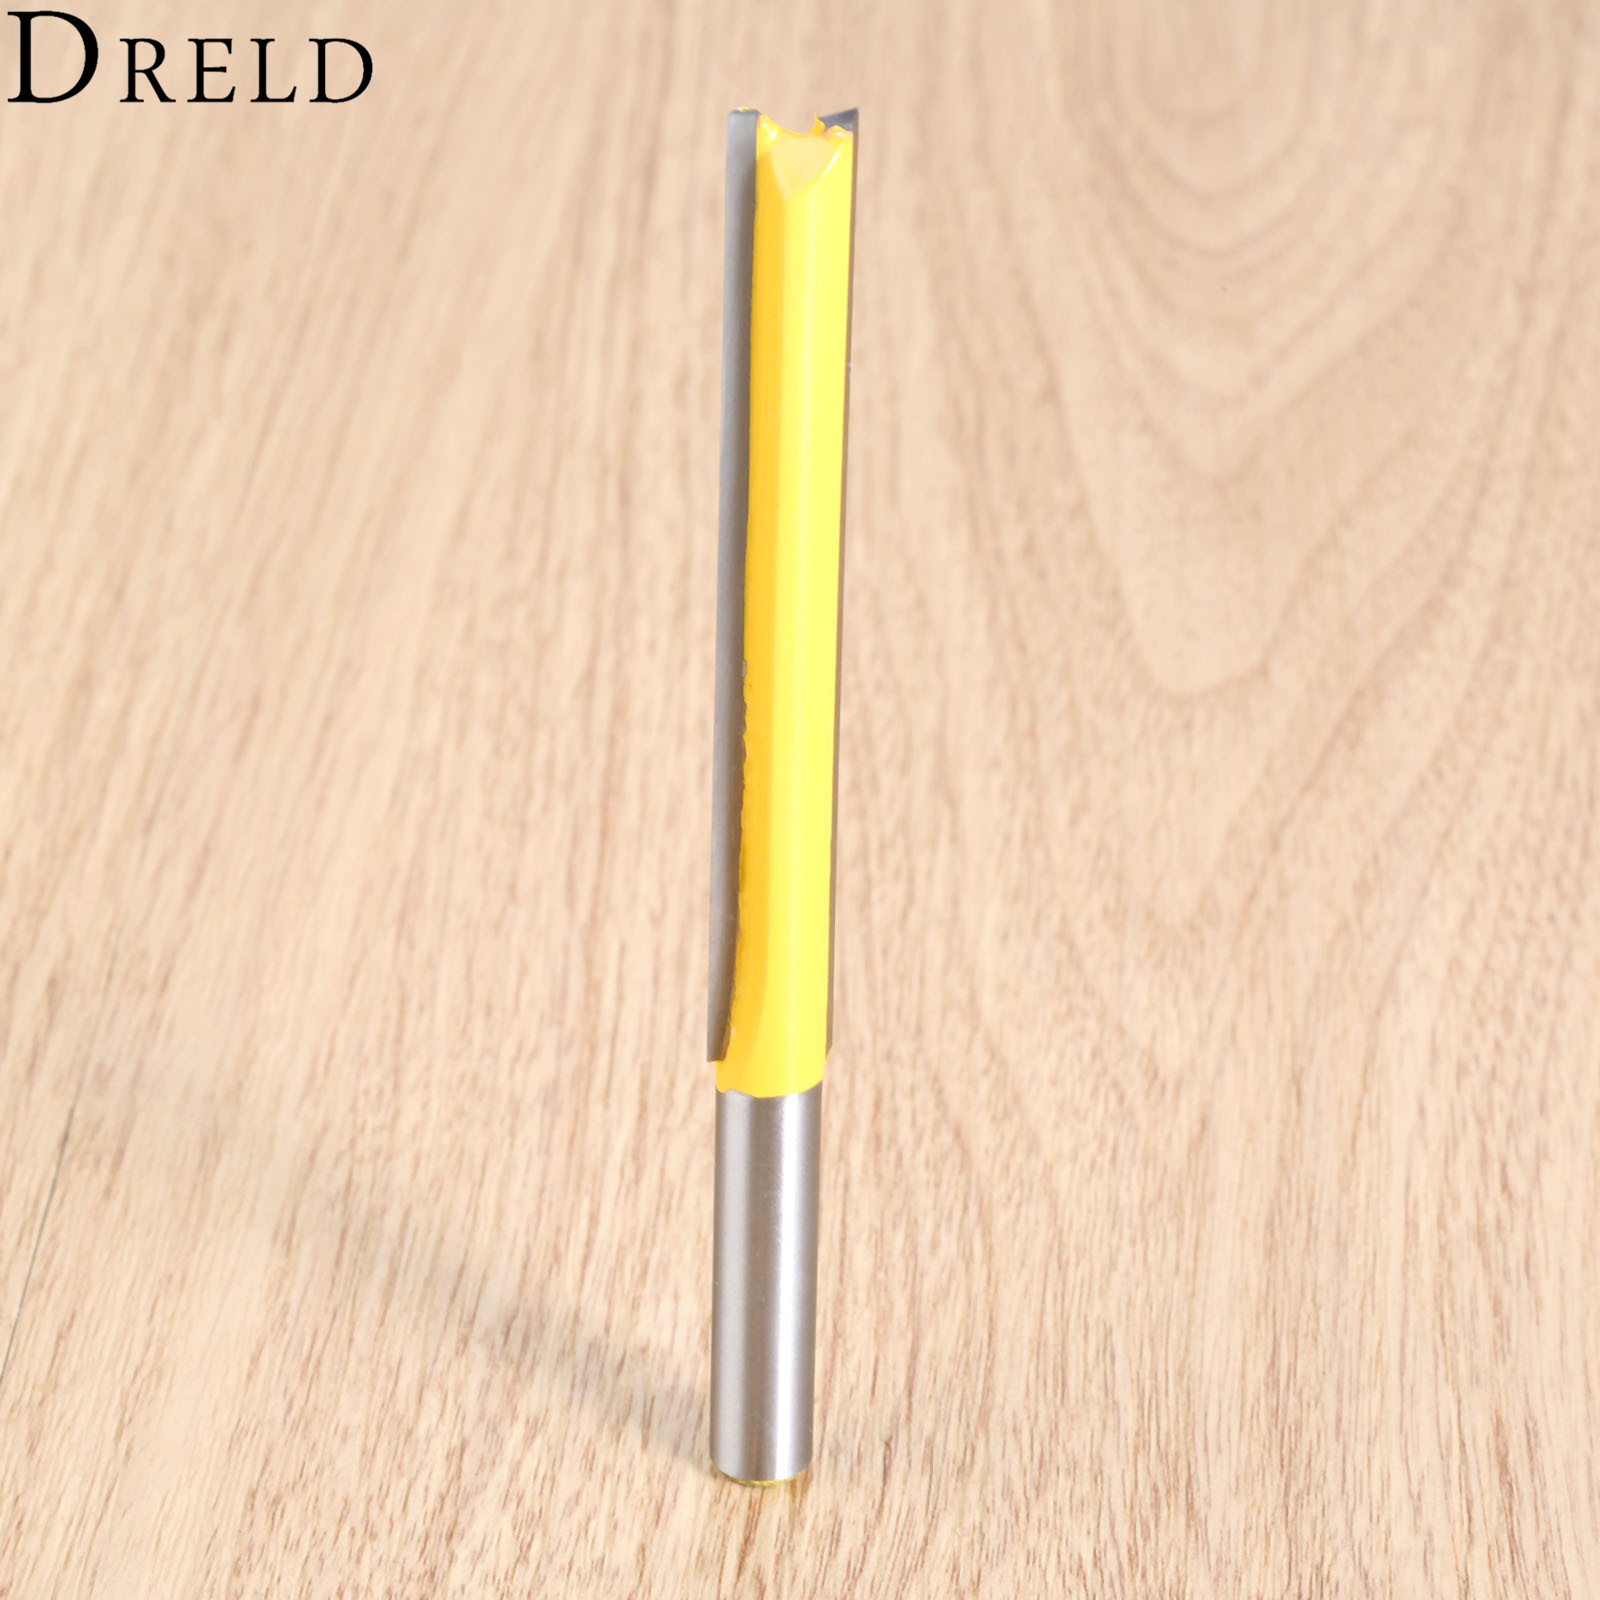 DRELD 1pc Woodworking Capenter Tools 8mm Shank Extra Long Straight Router Flush Trim Bearing Router Bit Wood Milling Cutter Tool